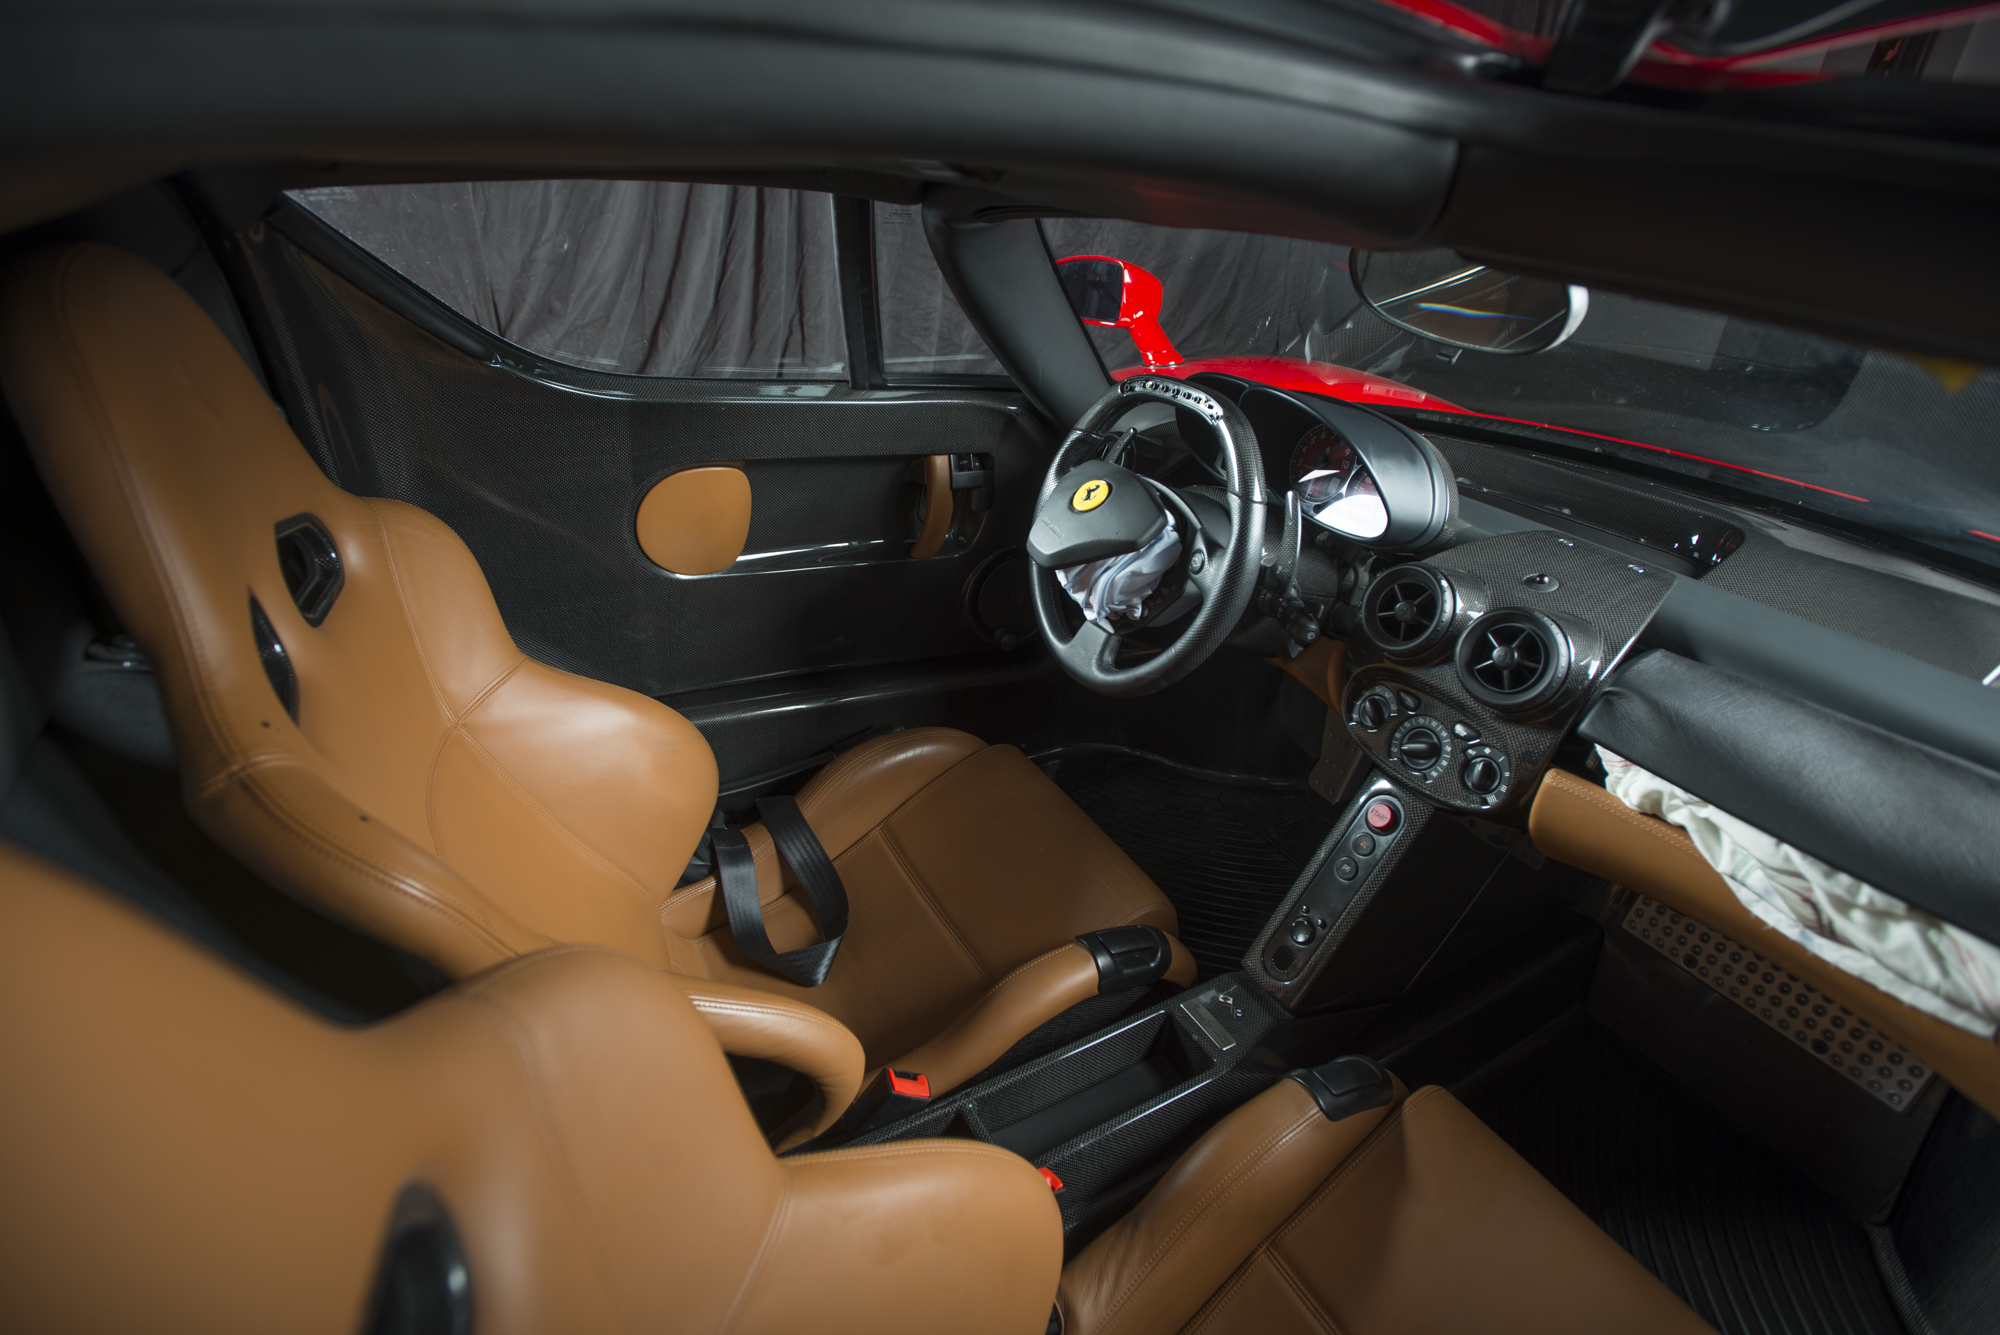 Ferrari Enzo interior crashed